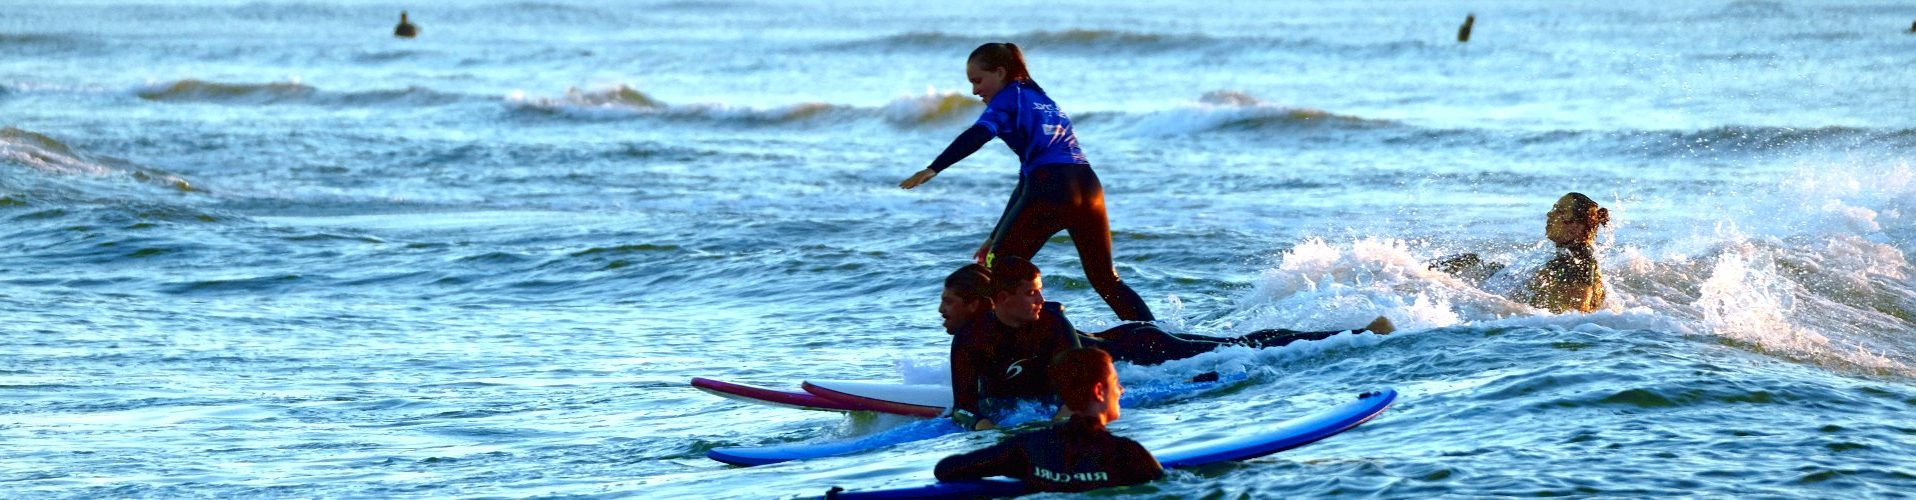 Junior surf school in France